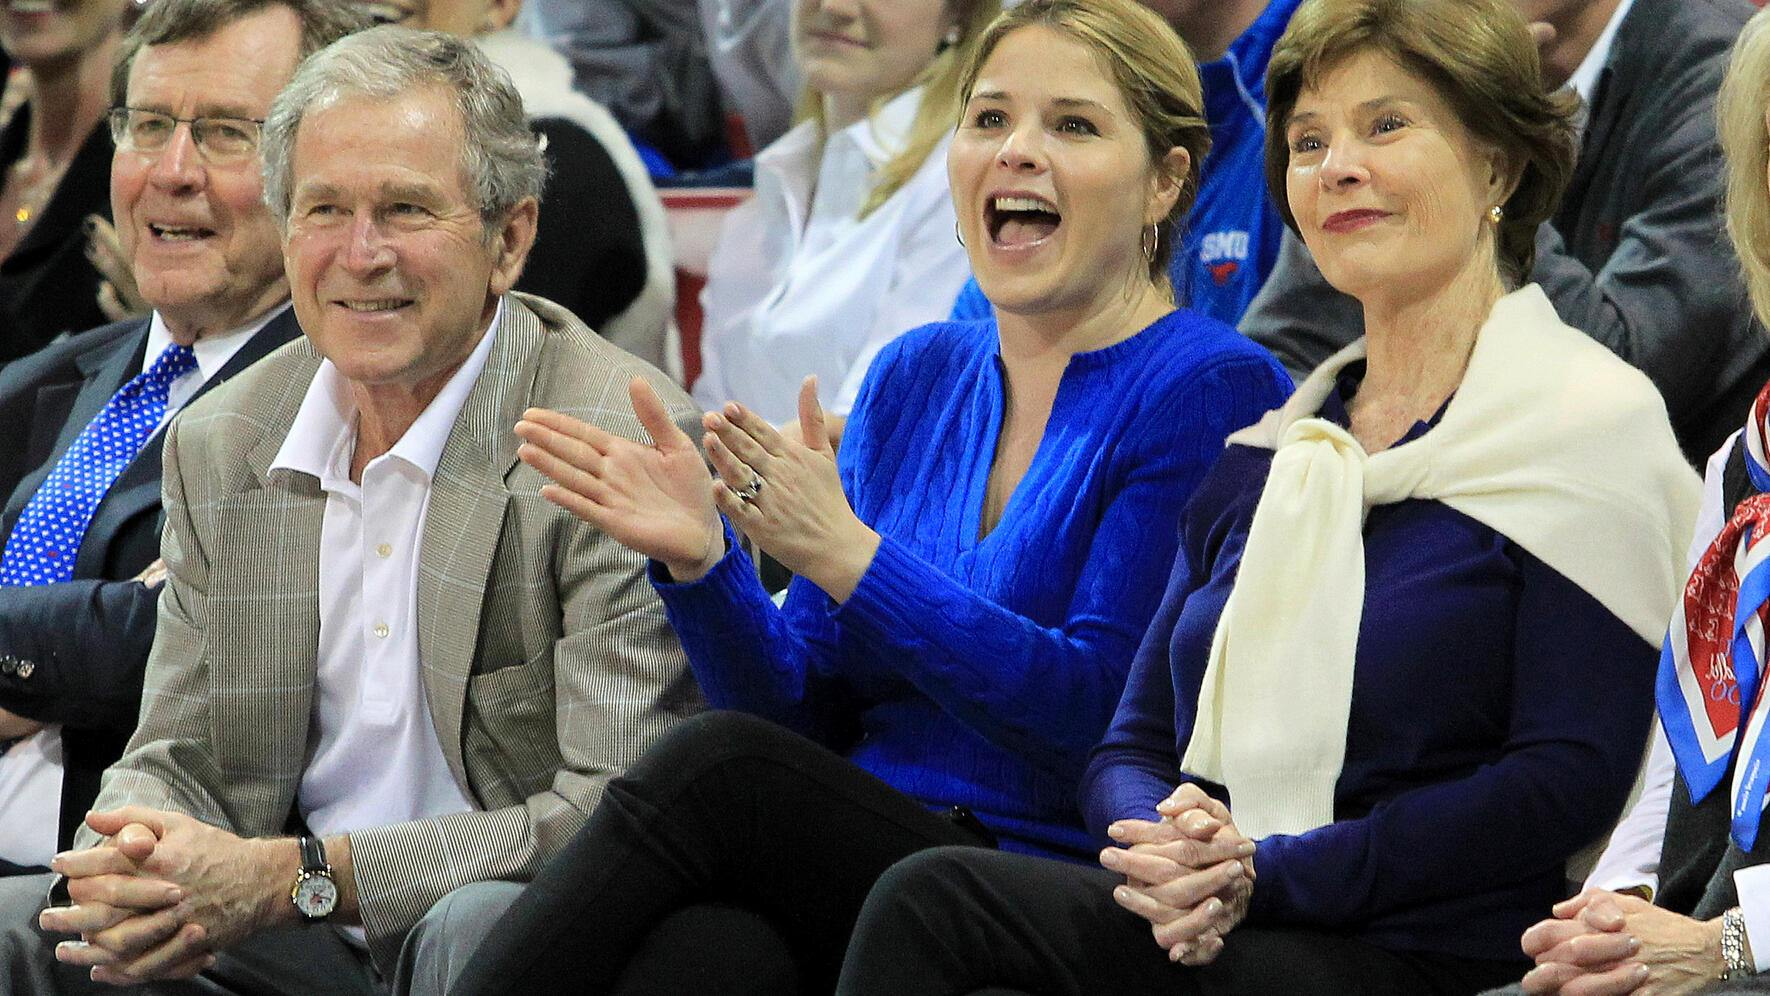 5 March 2014 - President George W. Bush, daughter Jenna Bush Hager and wife Laura Bush during the American Athletic Conference college basketball game between the SMU Mustangs and the Louisville Cardinals at Moody Coliseum in Dallas, Texas. Louisville won the game 84-71. (Photo by Matthew Visinsky/Icon SMI/Corbis via Getty Images)